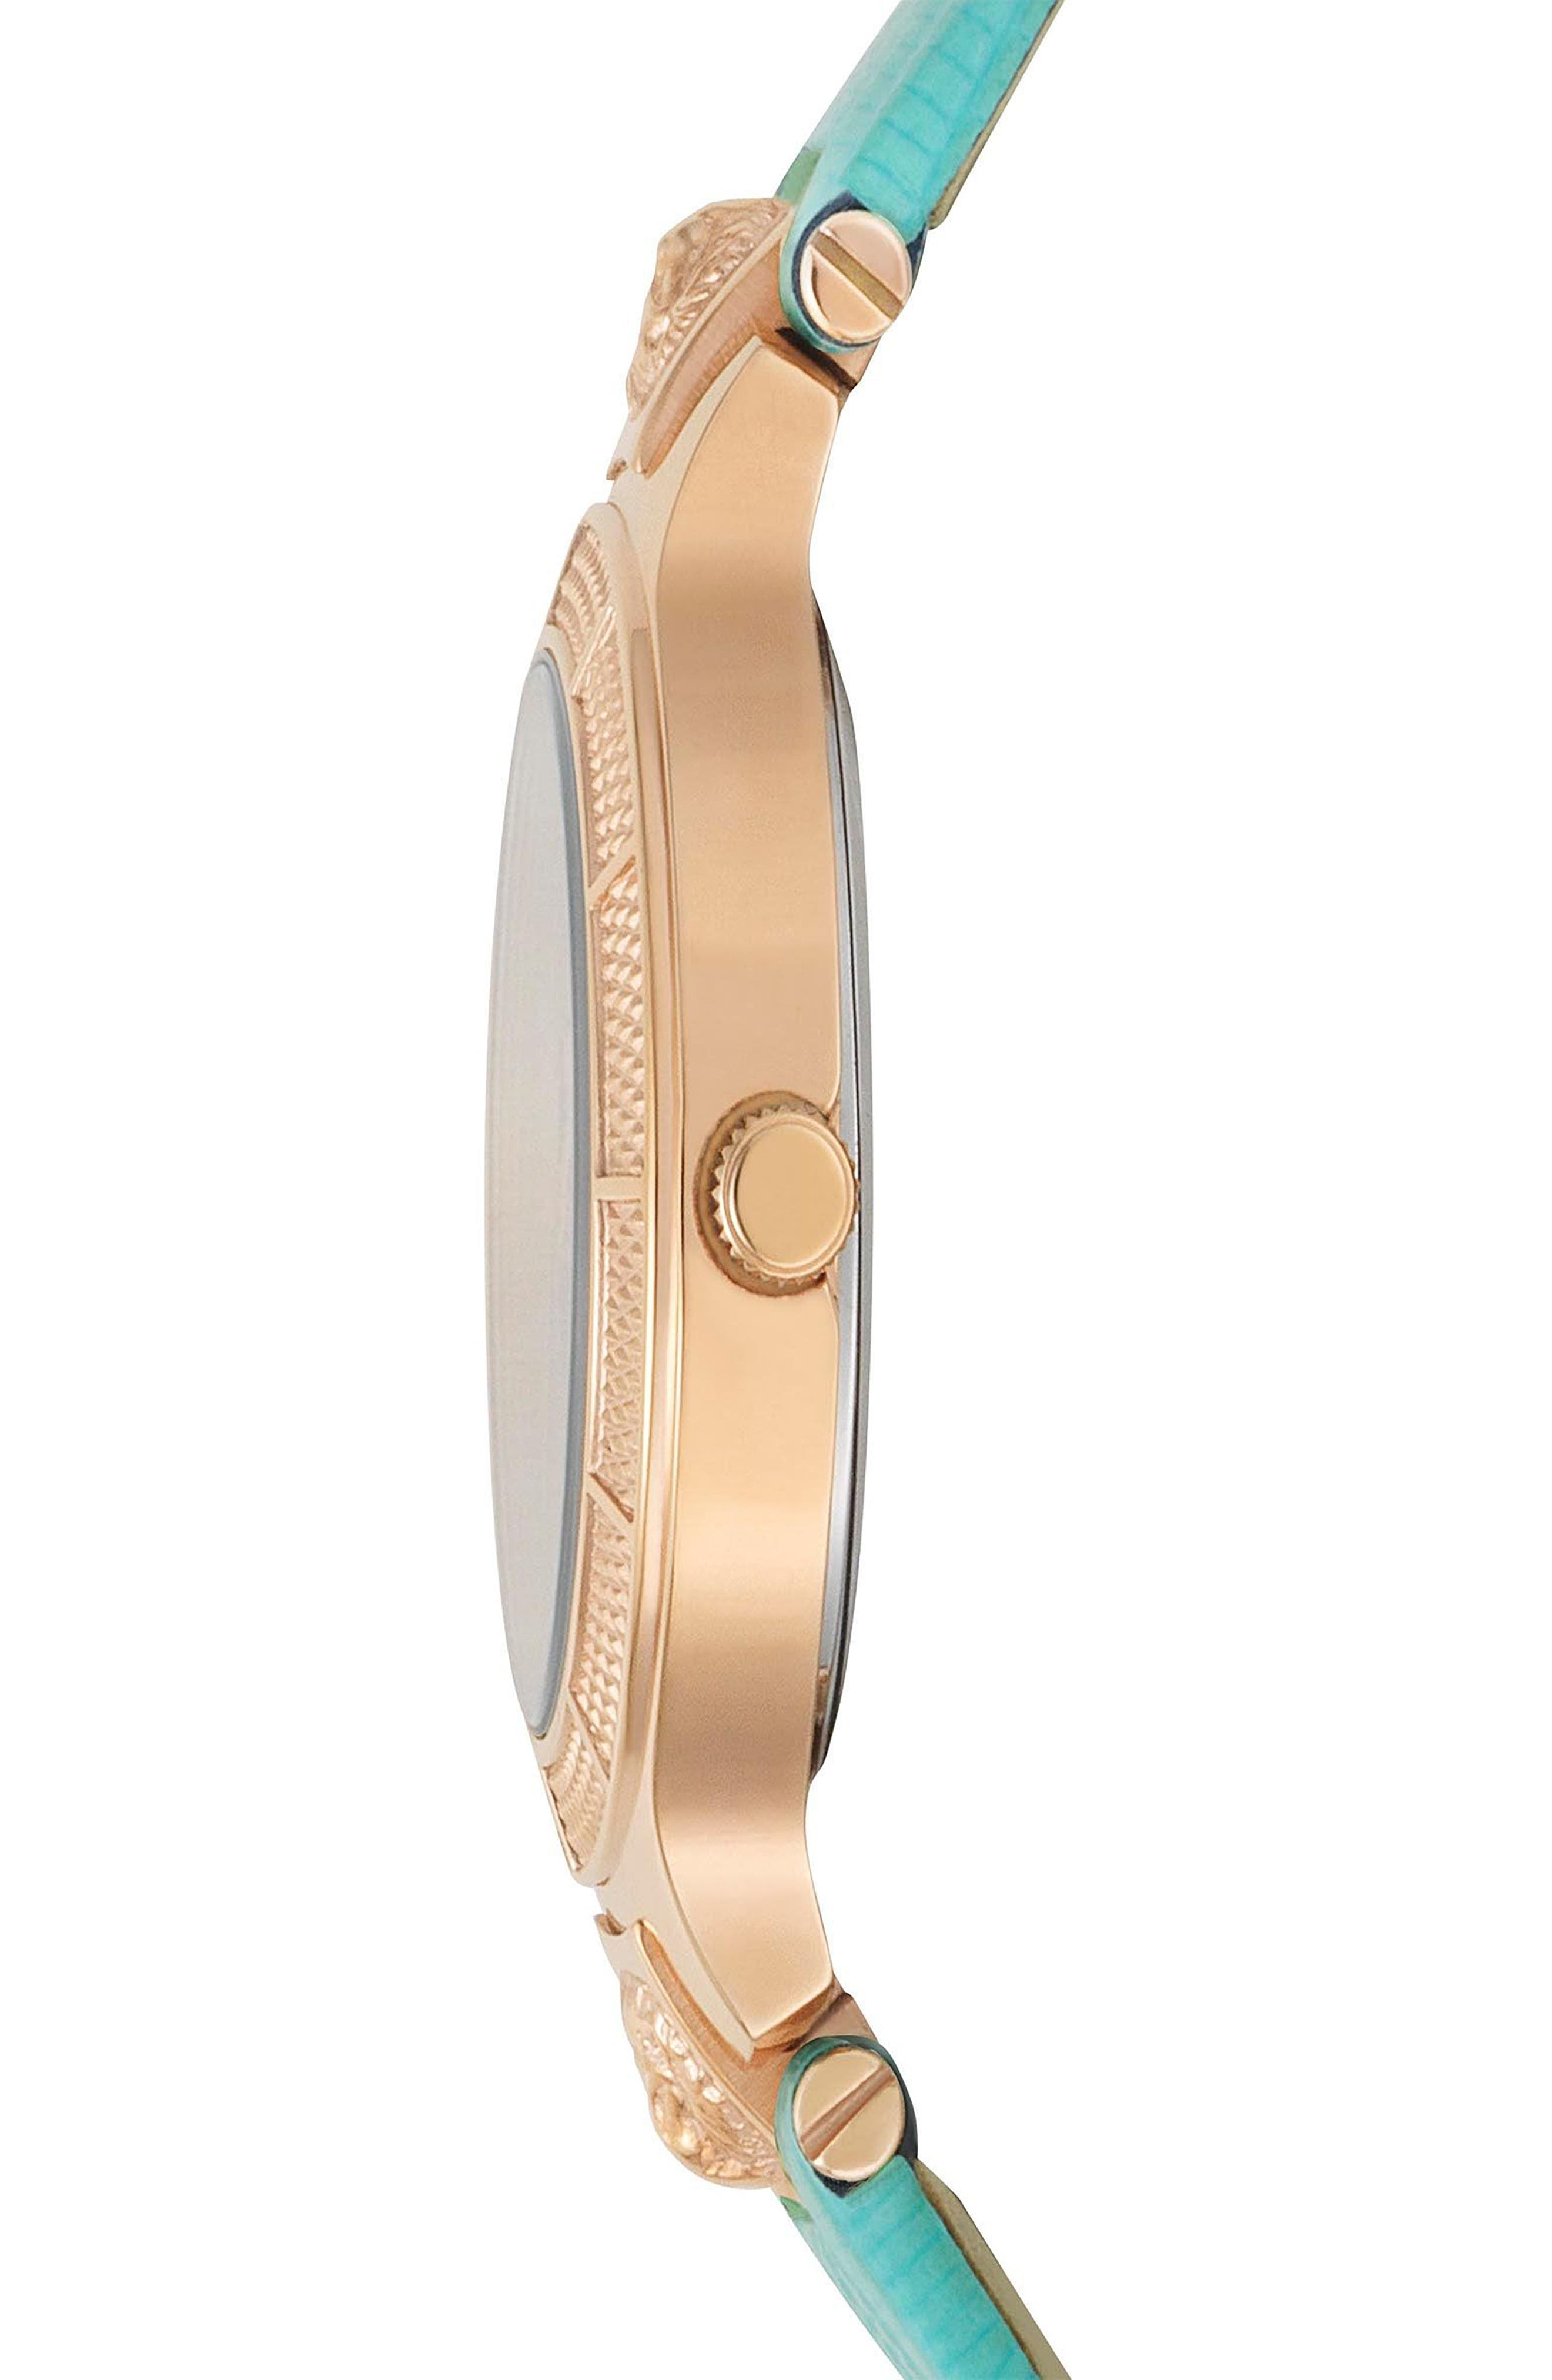 VERSUS by Versace Claremont Leather Strap Watch, 32mm,                             Alternate thumbnail 2, color,                             Green/ Rose Gold